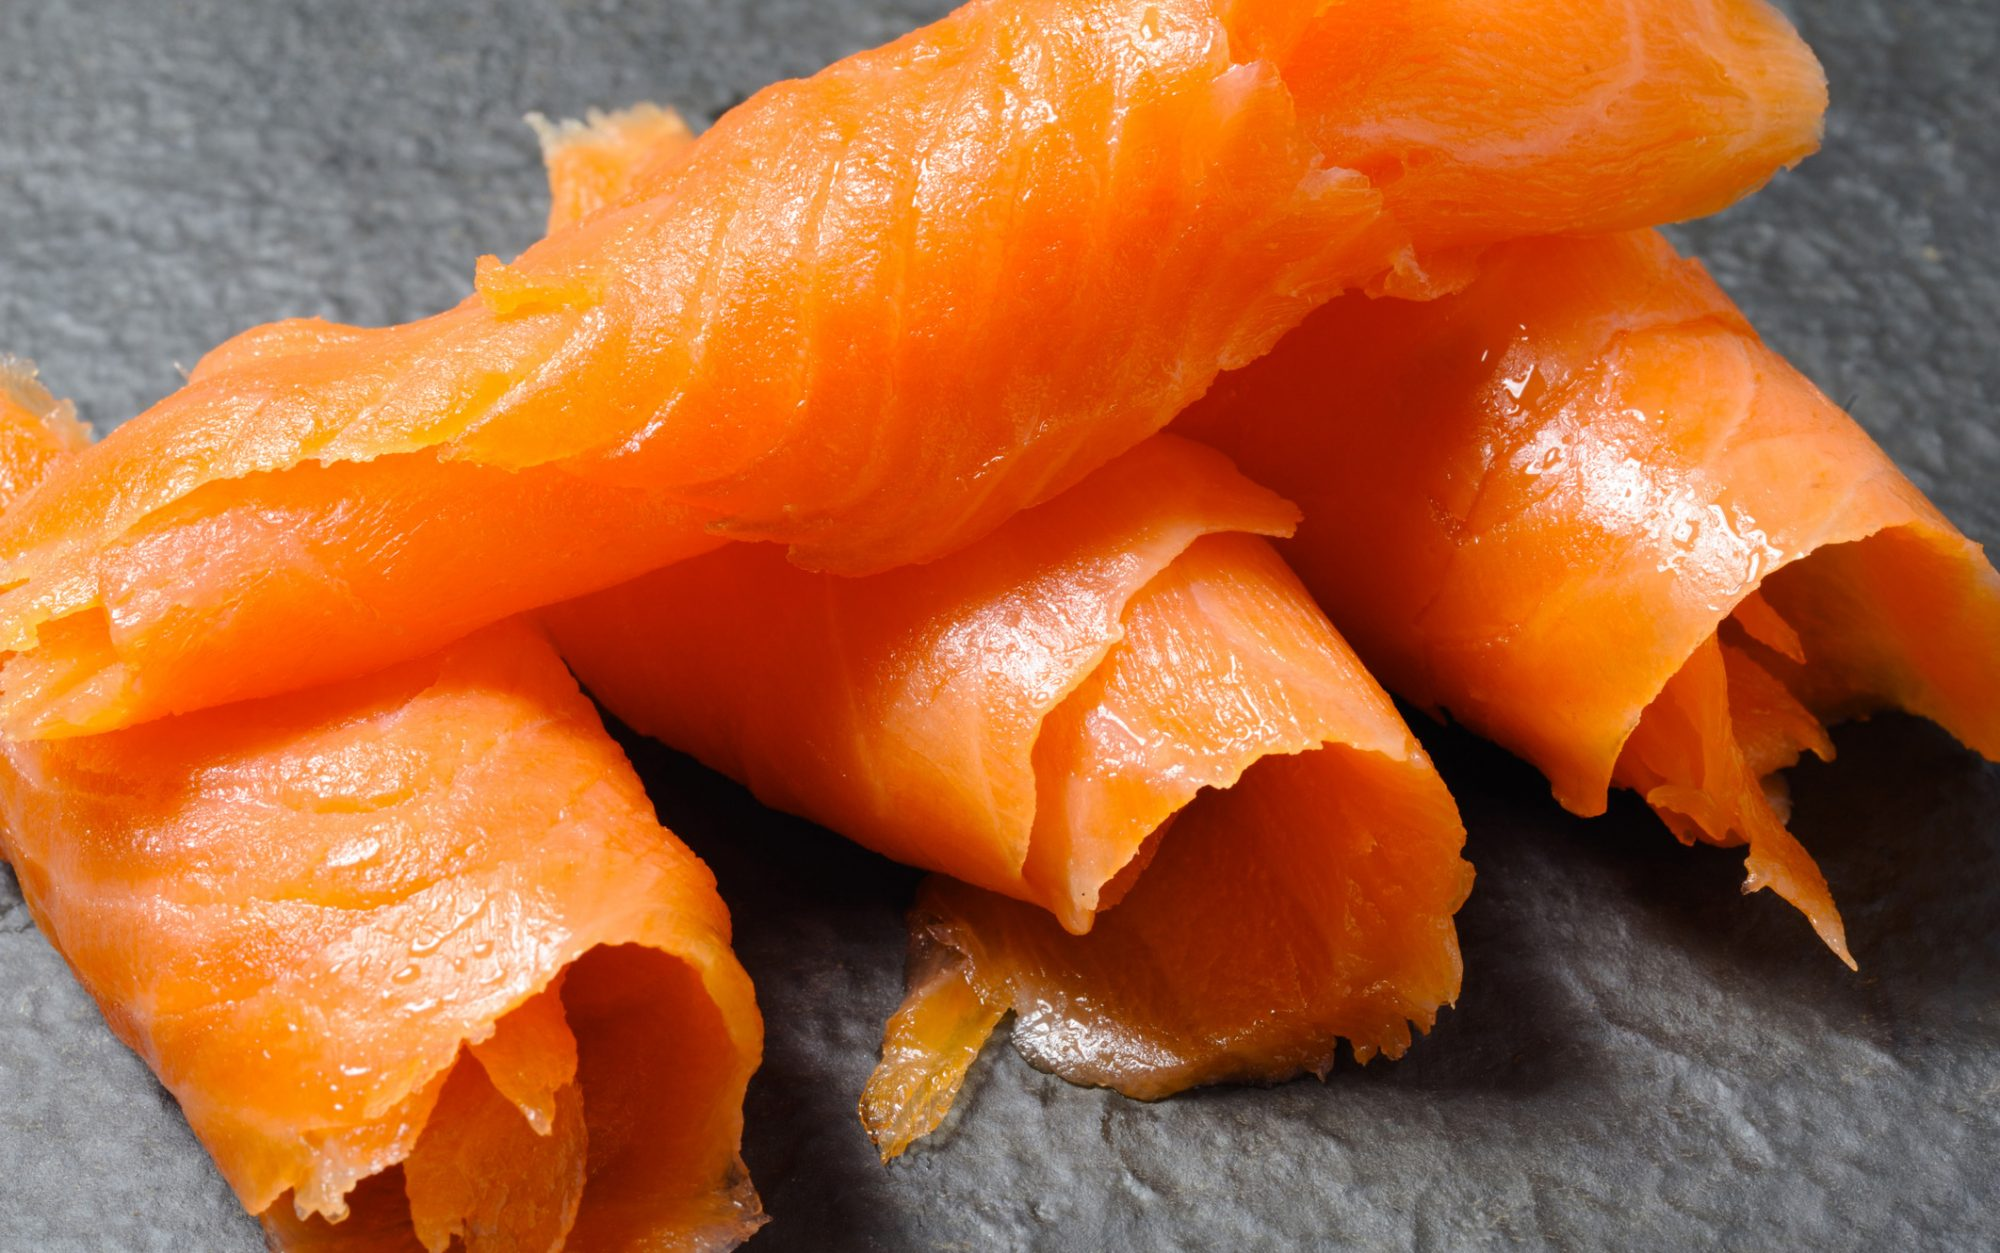 EC:  assets%2Fmessage-editor%2F1478278721758-smoked-salmon-inline